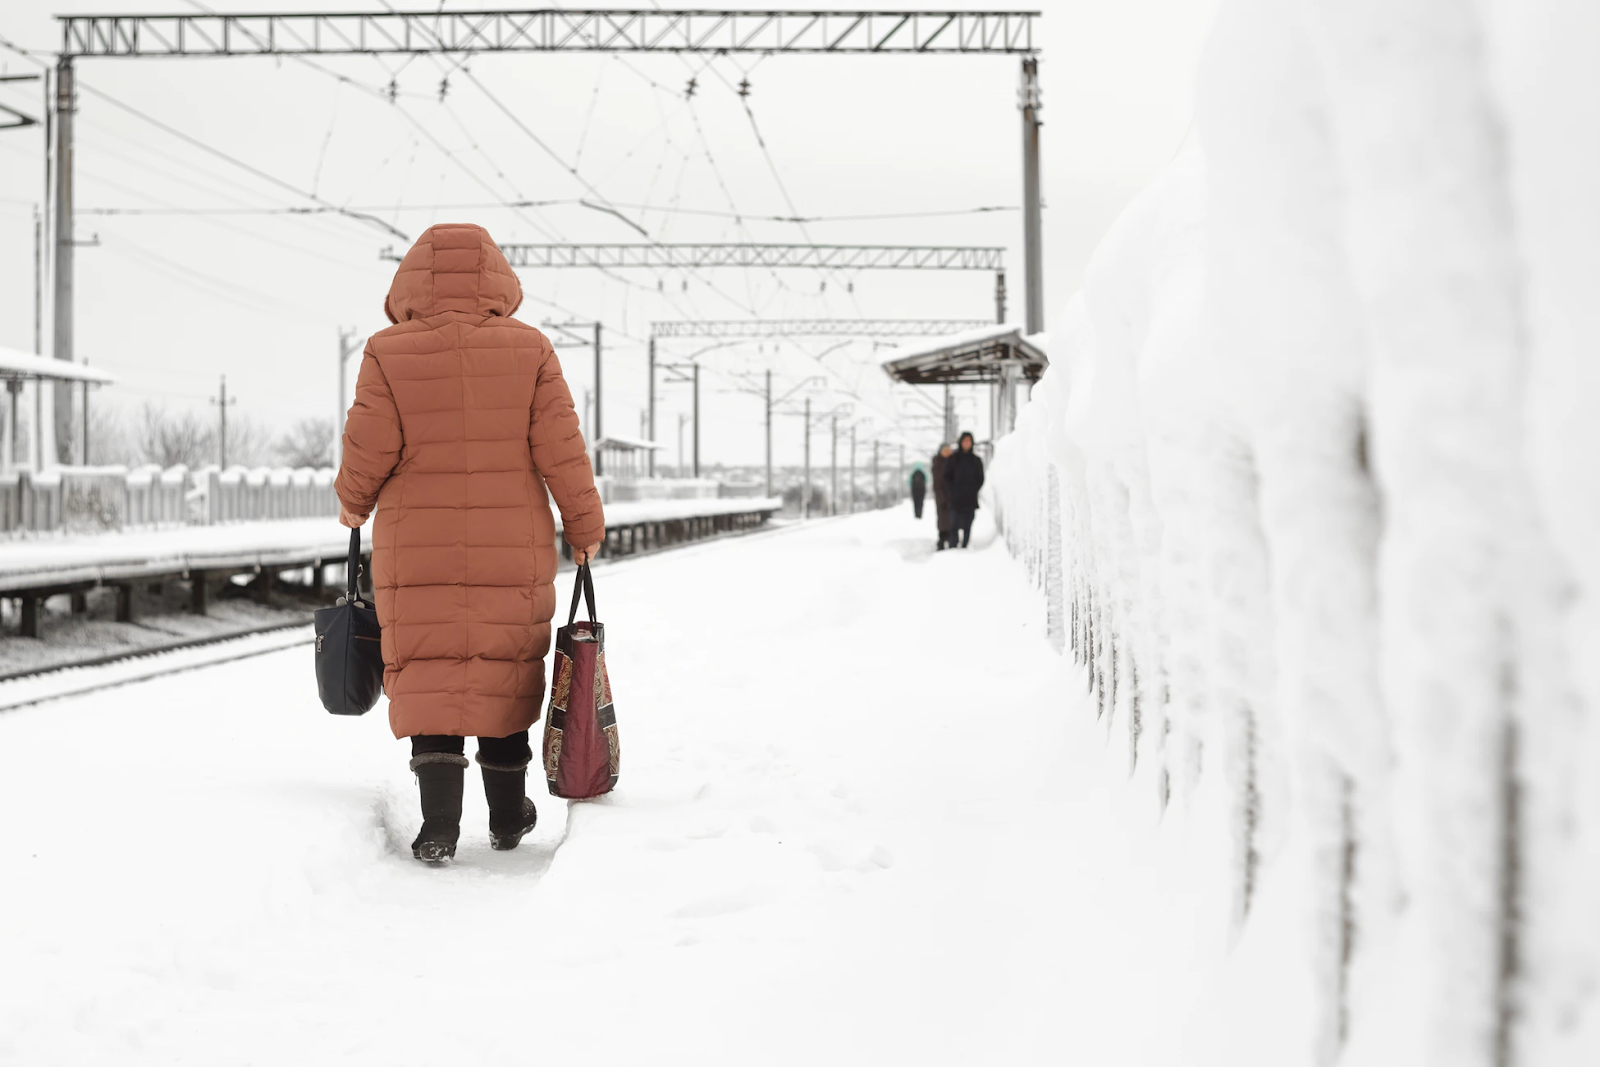 Woman walking in snow near train tracks